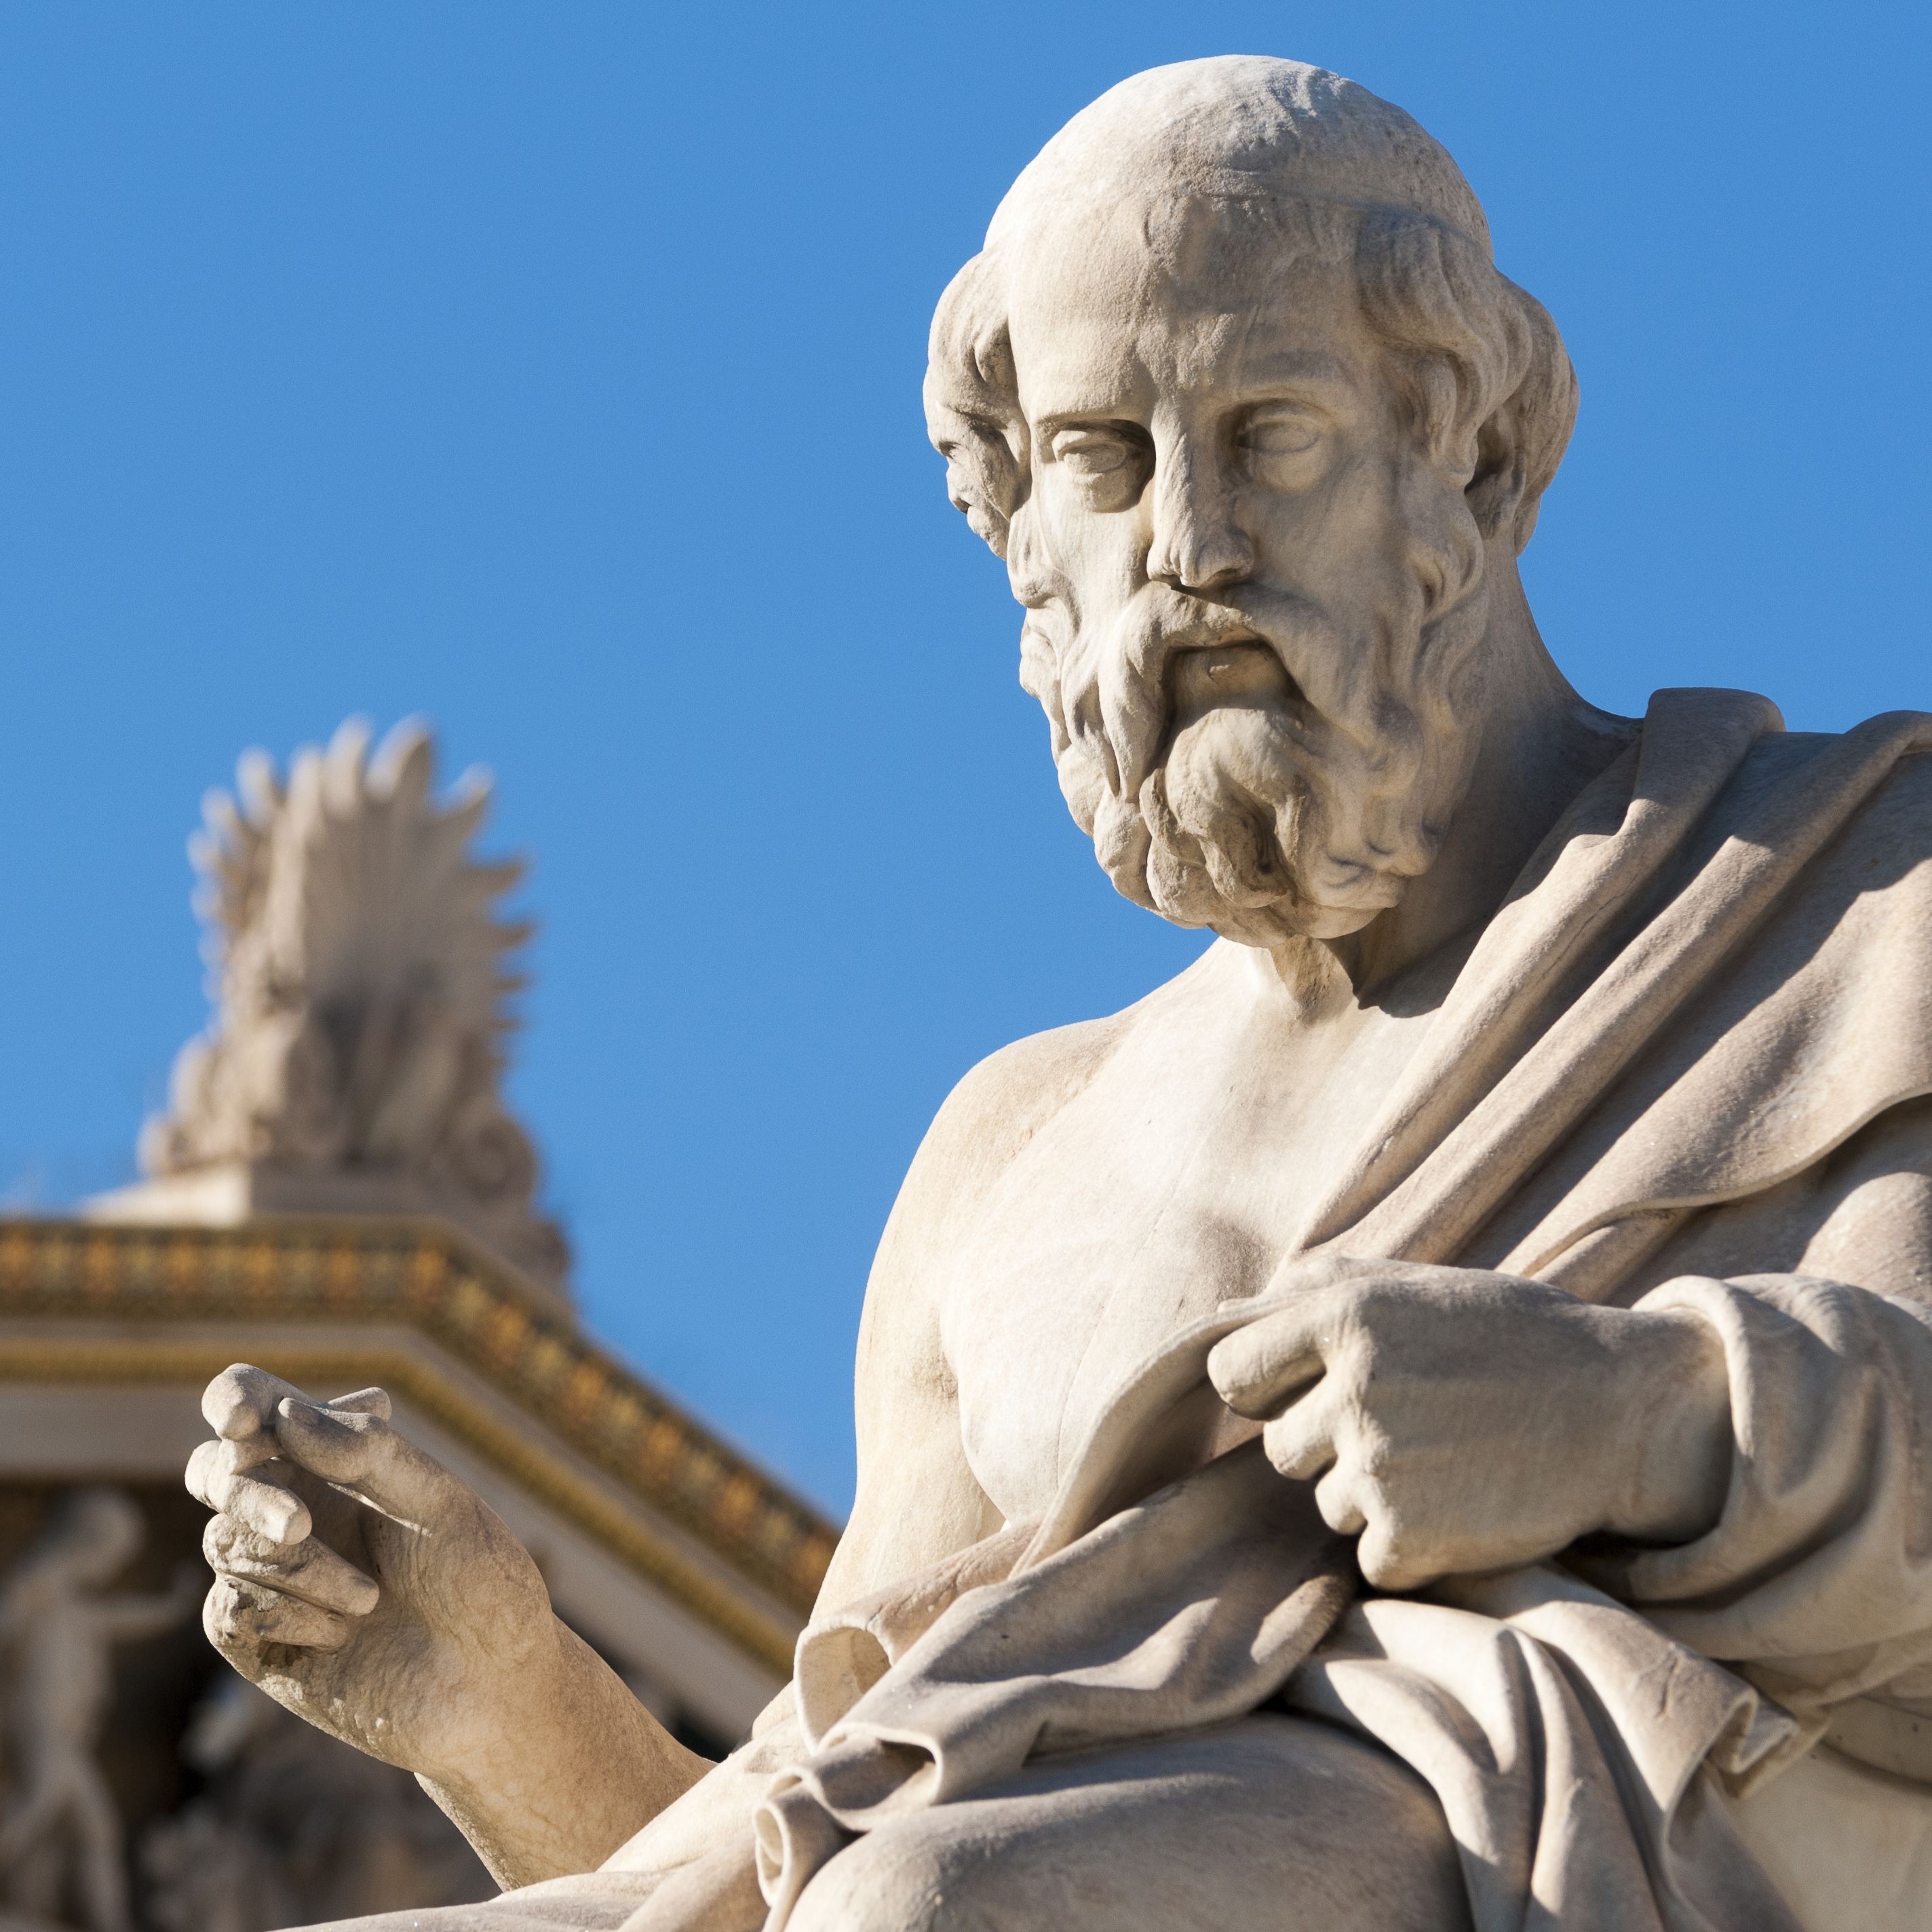 What Is Plato's 'Ladder of Love' in his 'Symposium'?